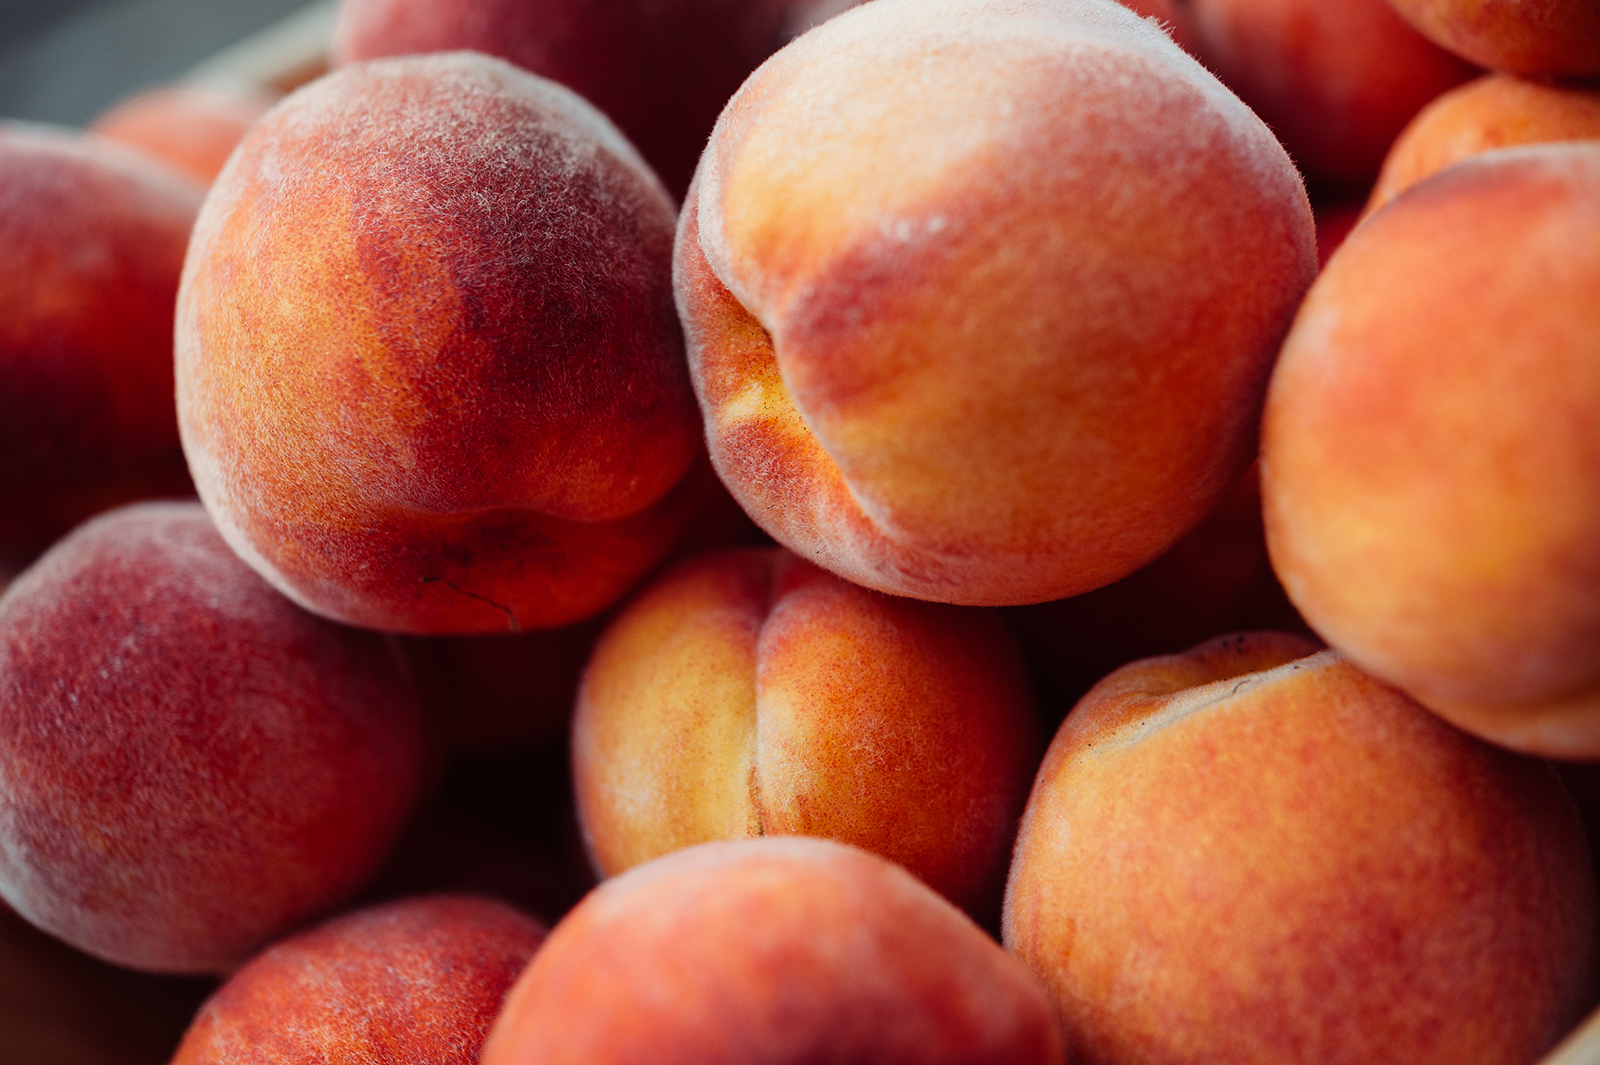 Peaches linked to salmonella outbreak that has sickened people in 9 states including New Jersey and Pennsylvania